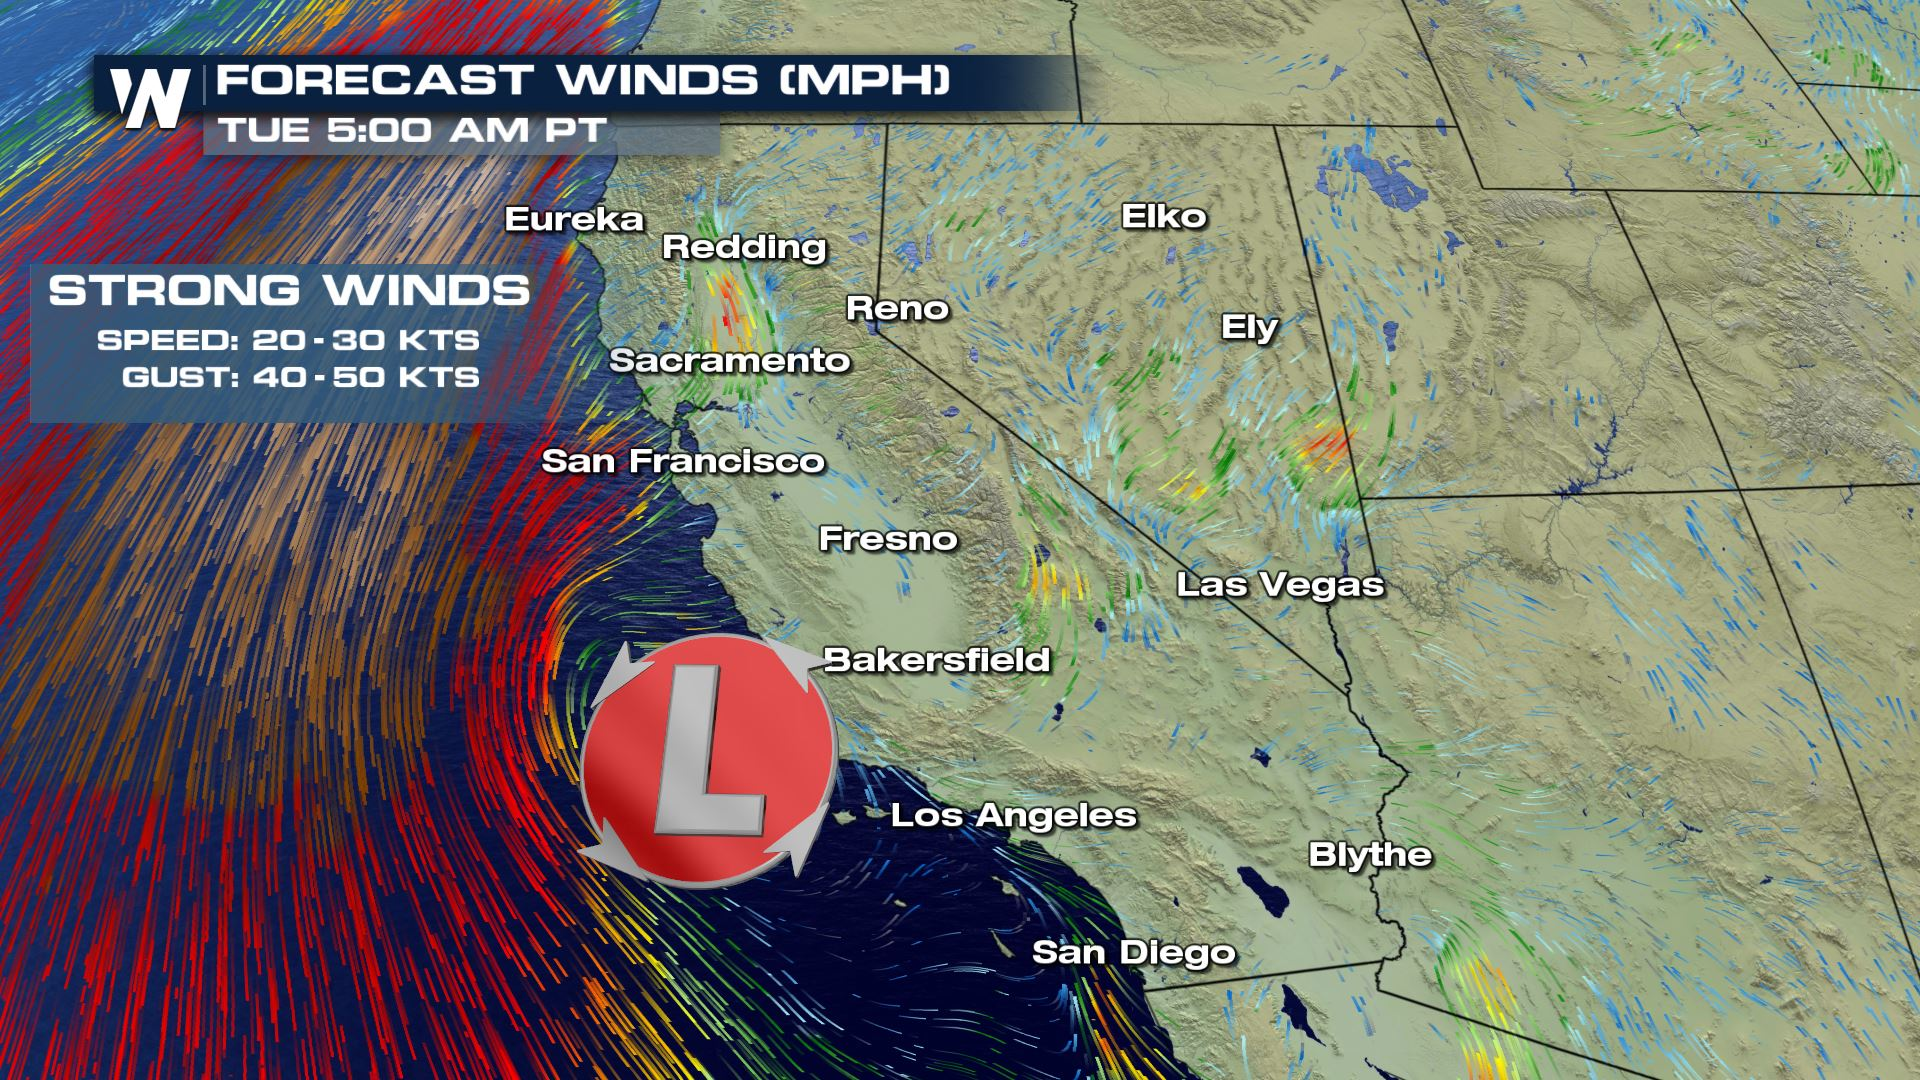 High Winds For The West Coast Early Next Week